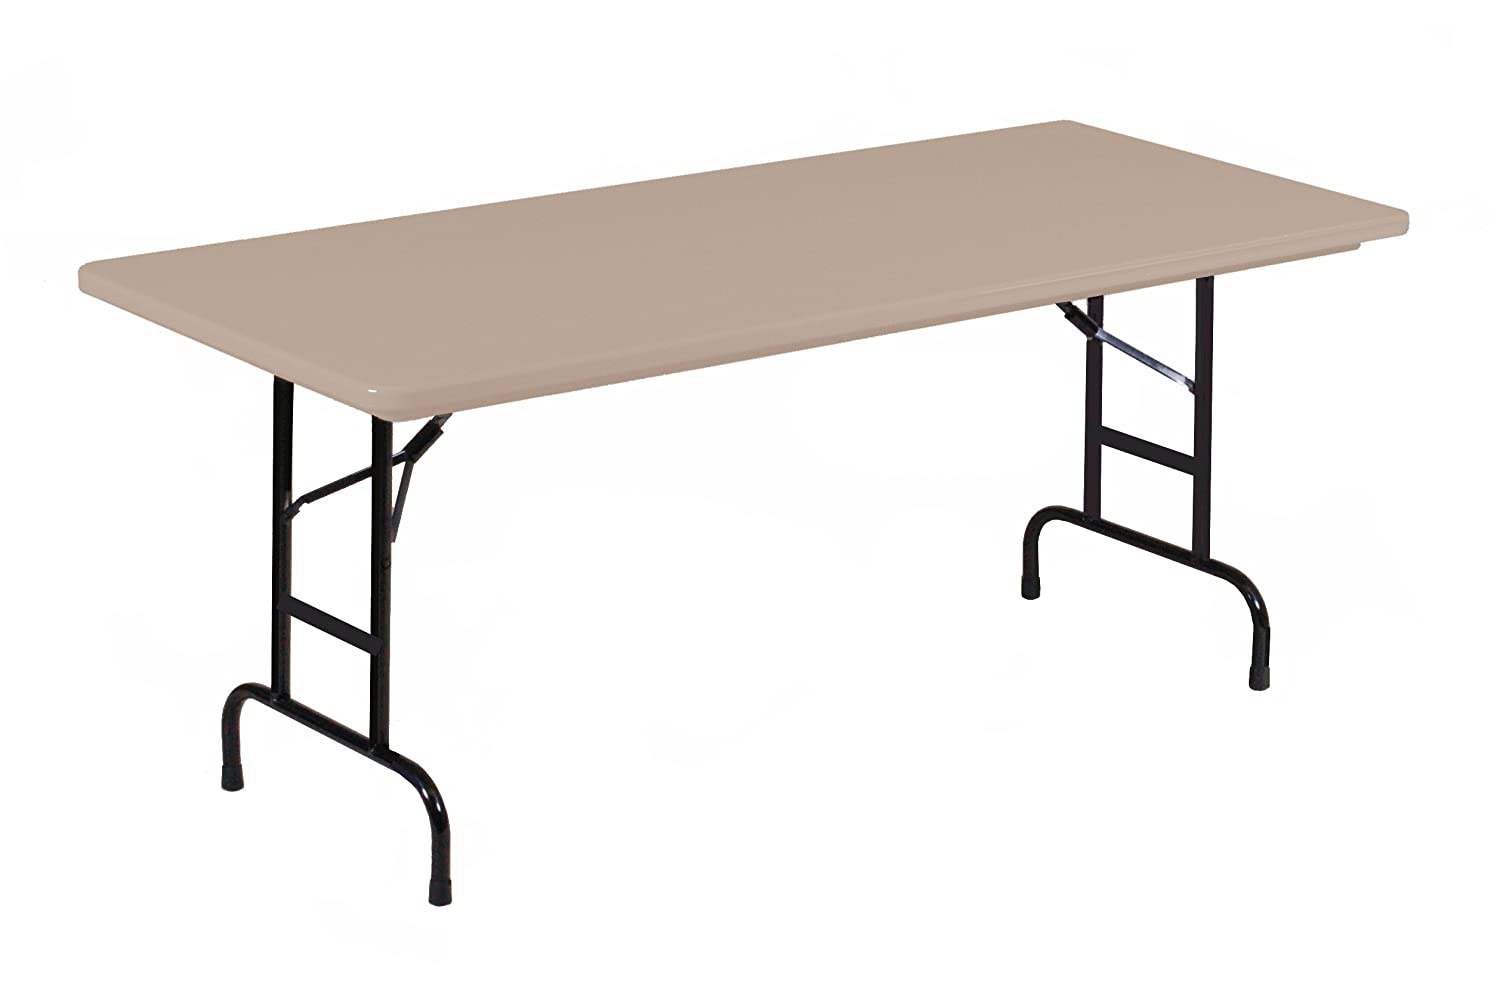 Correll RA2448-28 R Series, Adjustable Height Blow Molded Plastic Commercial Duty Folding Table, Rectangular, 24' x 48', Brilliant Yellow 24 x 48 Inc. RA2448 28